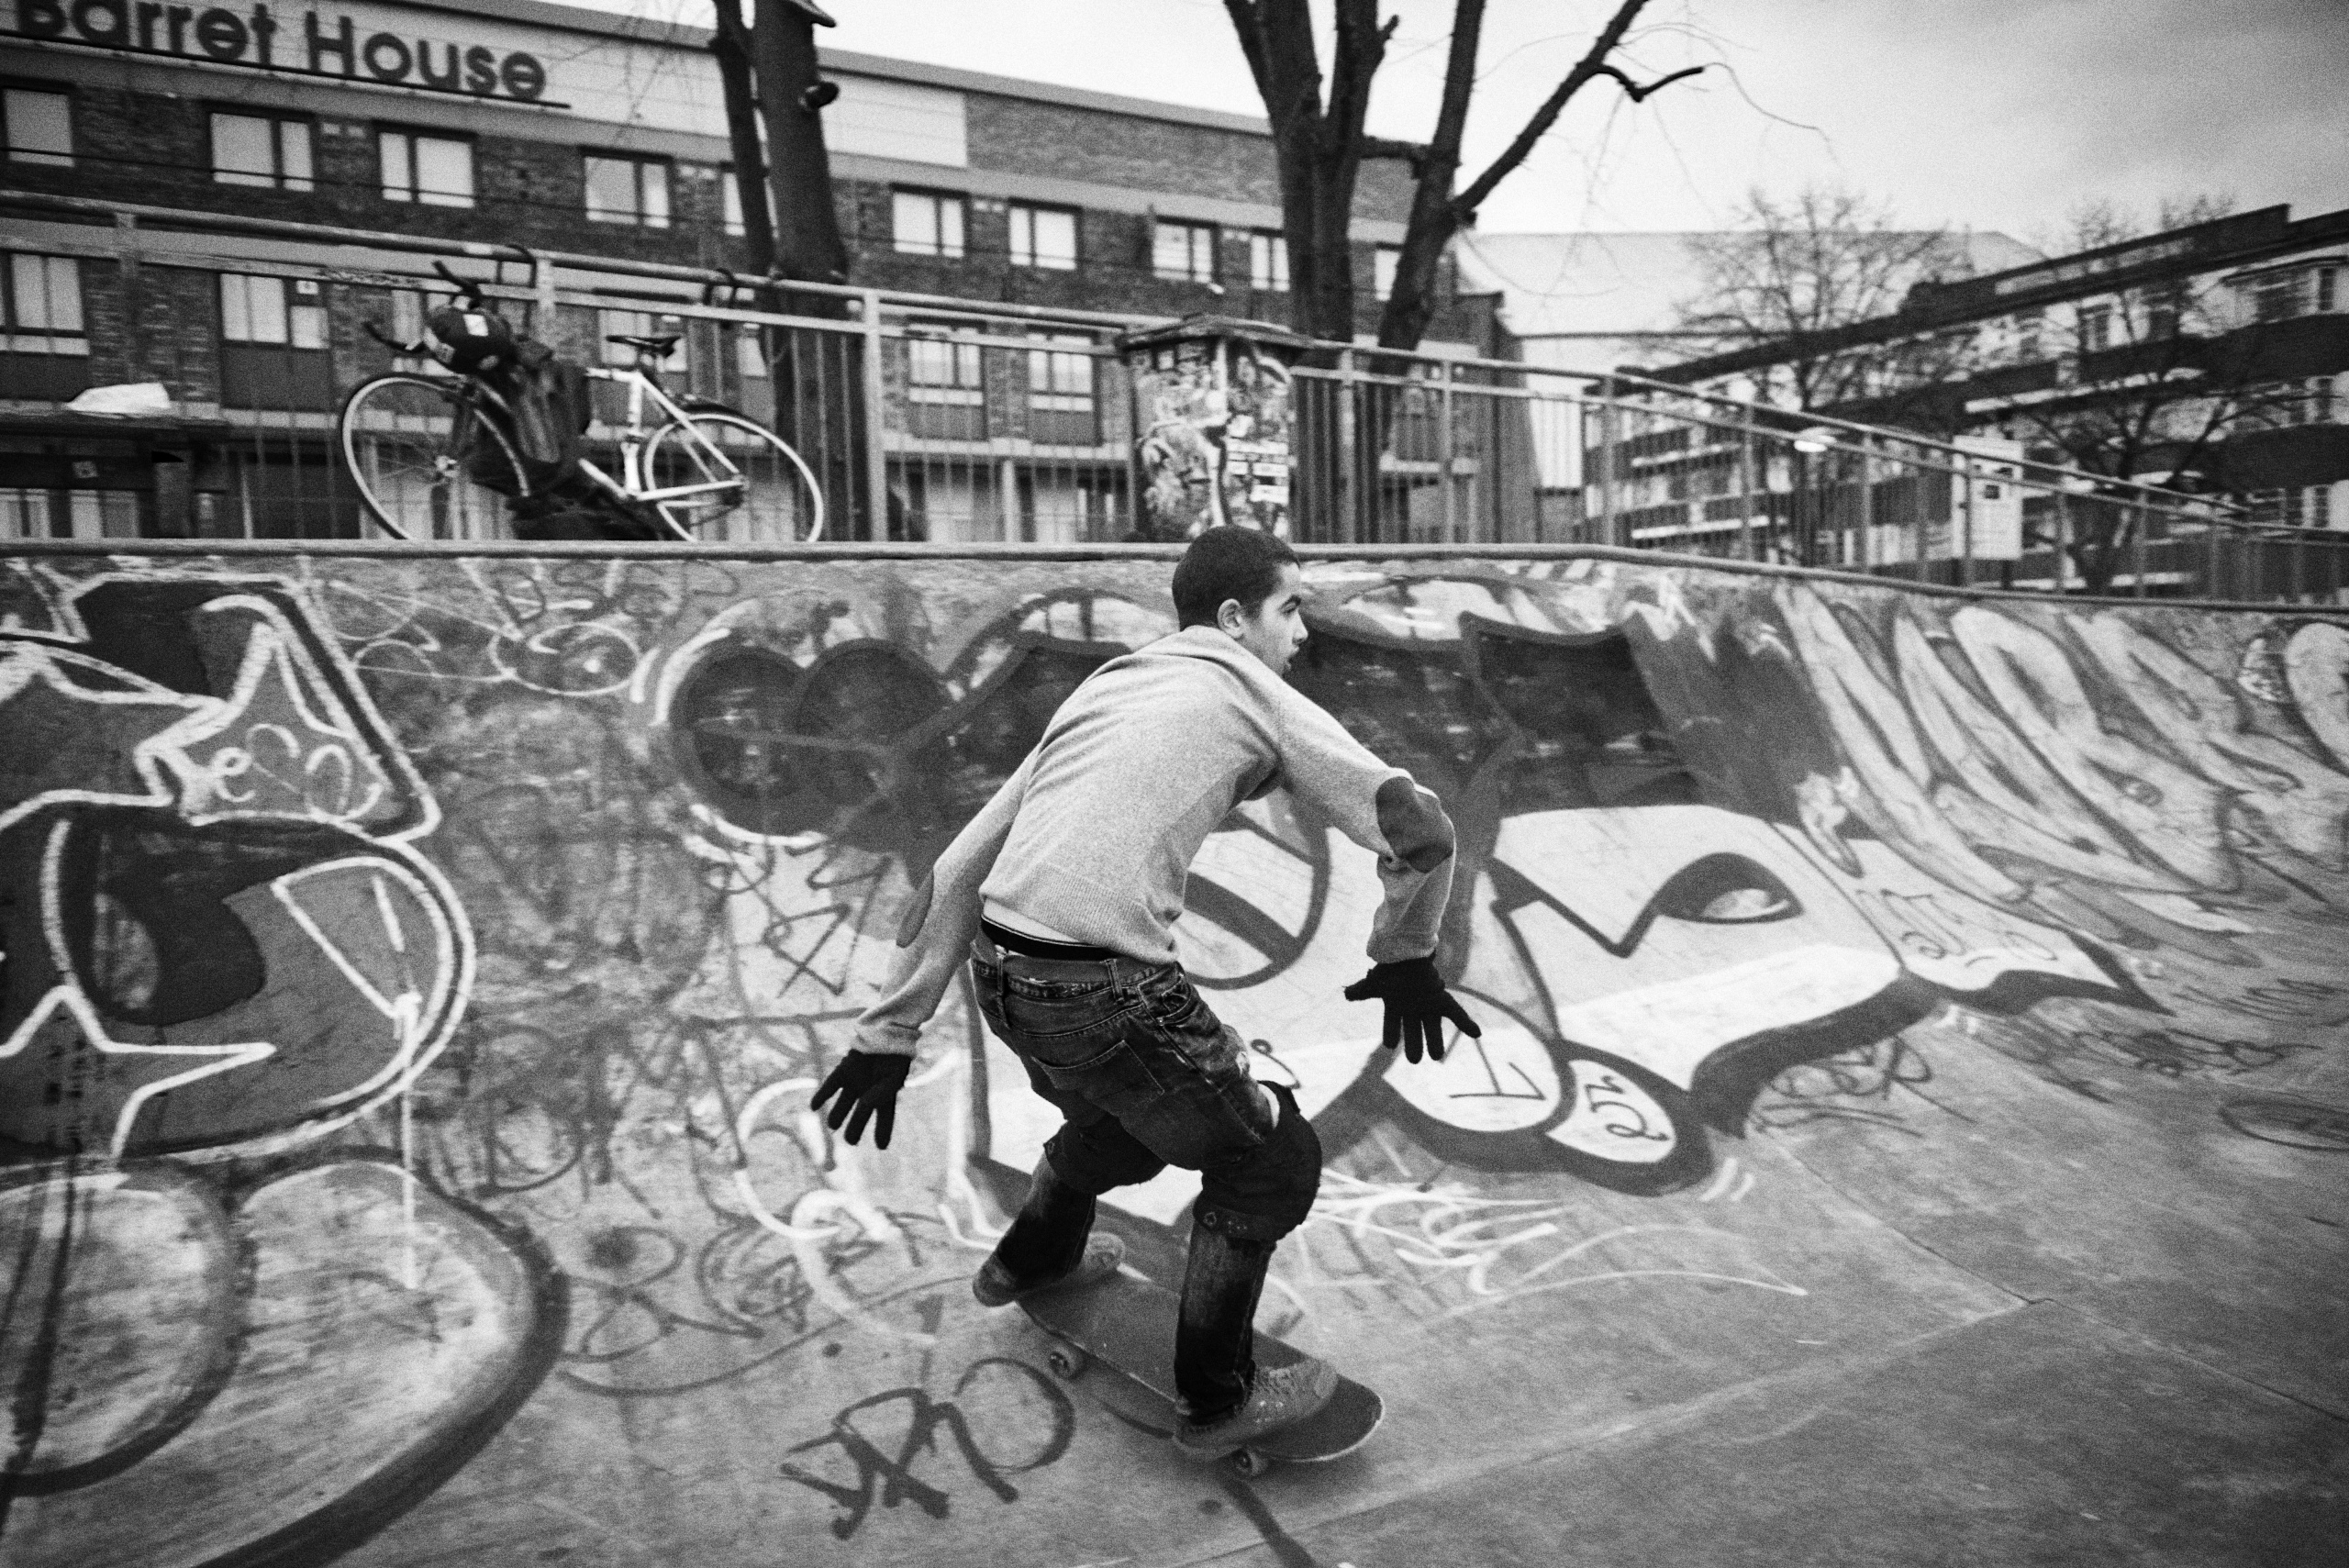 Brixton-skate-park-Matt-Stansfield-Lifestyle-Youth-Culture_7